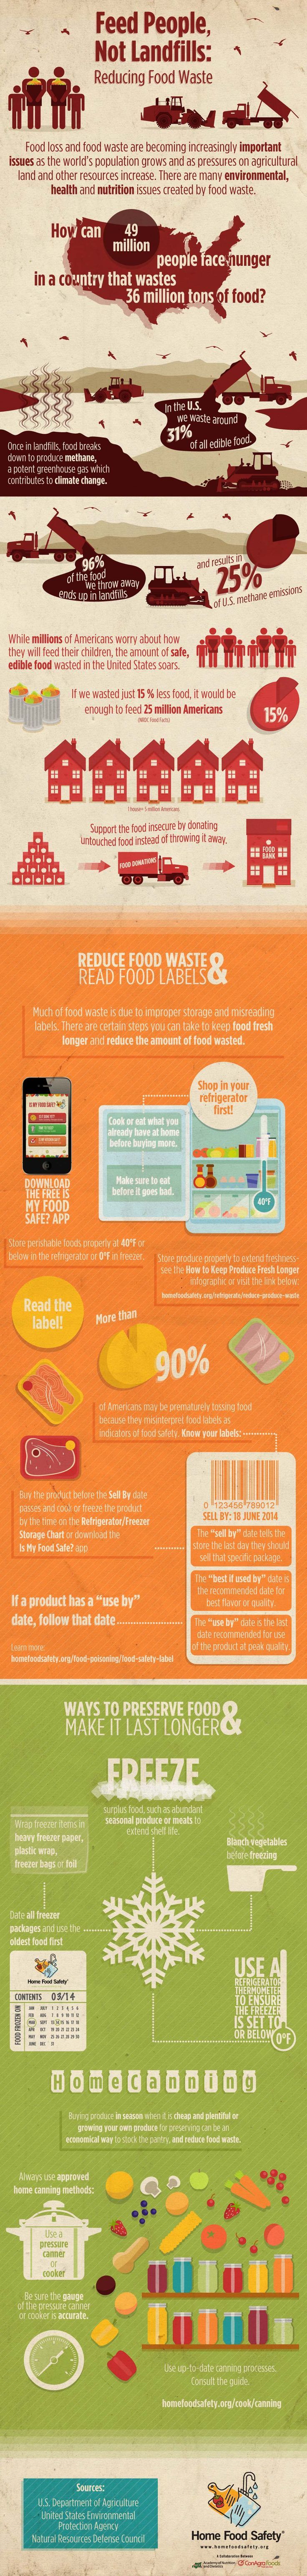 Downloadable infographic on reducing food waste from the Academy of Nutrition and Dietetics